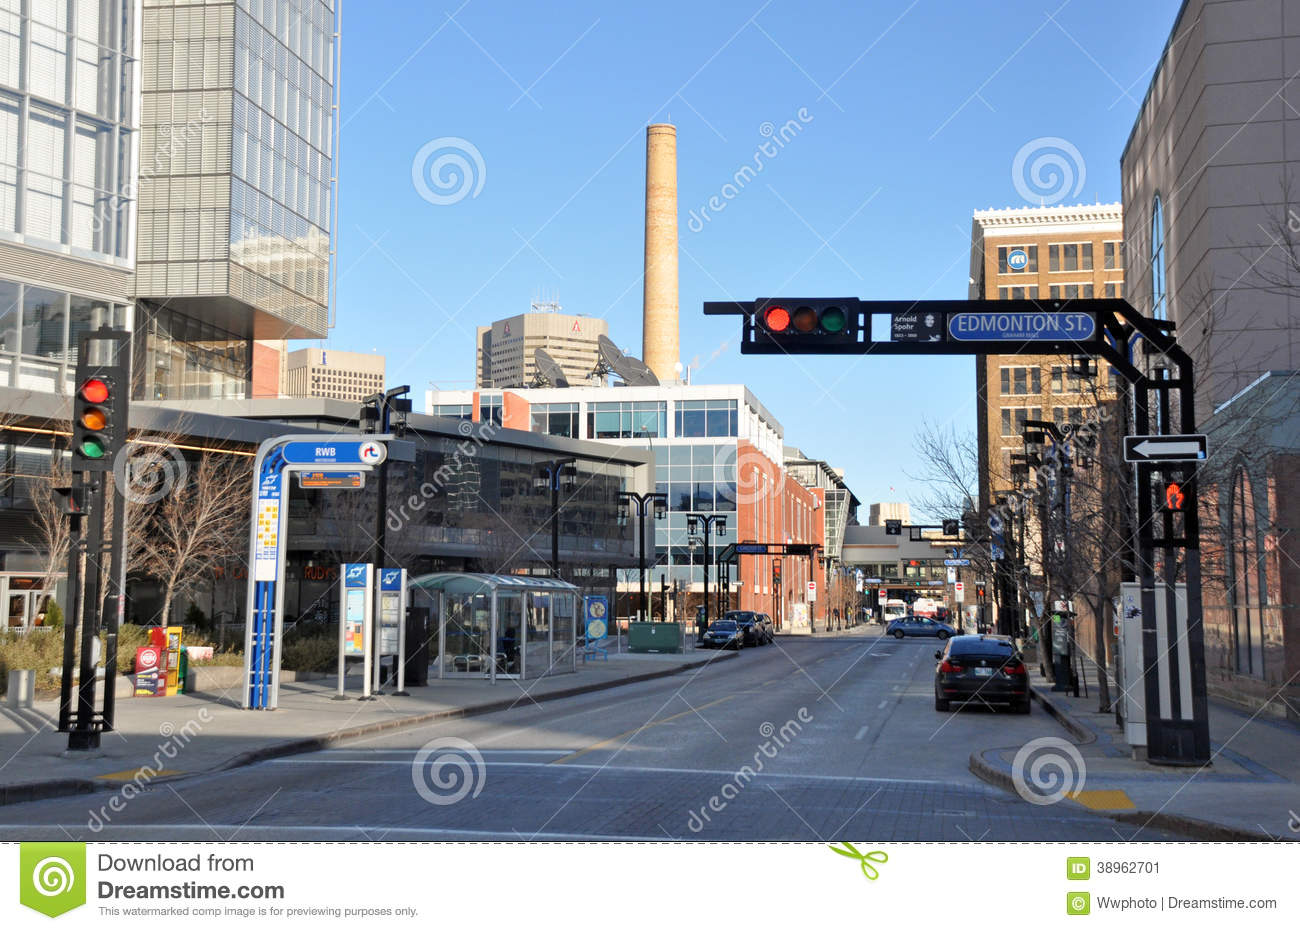 Stock Image New Area City Cloudy Weather View Streets Winnipeg Manitoba Canada Photo Was Taken November Image38962701 on House Plans With Detached Garage